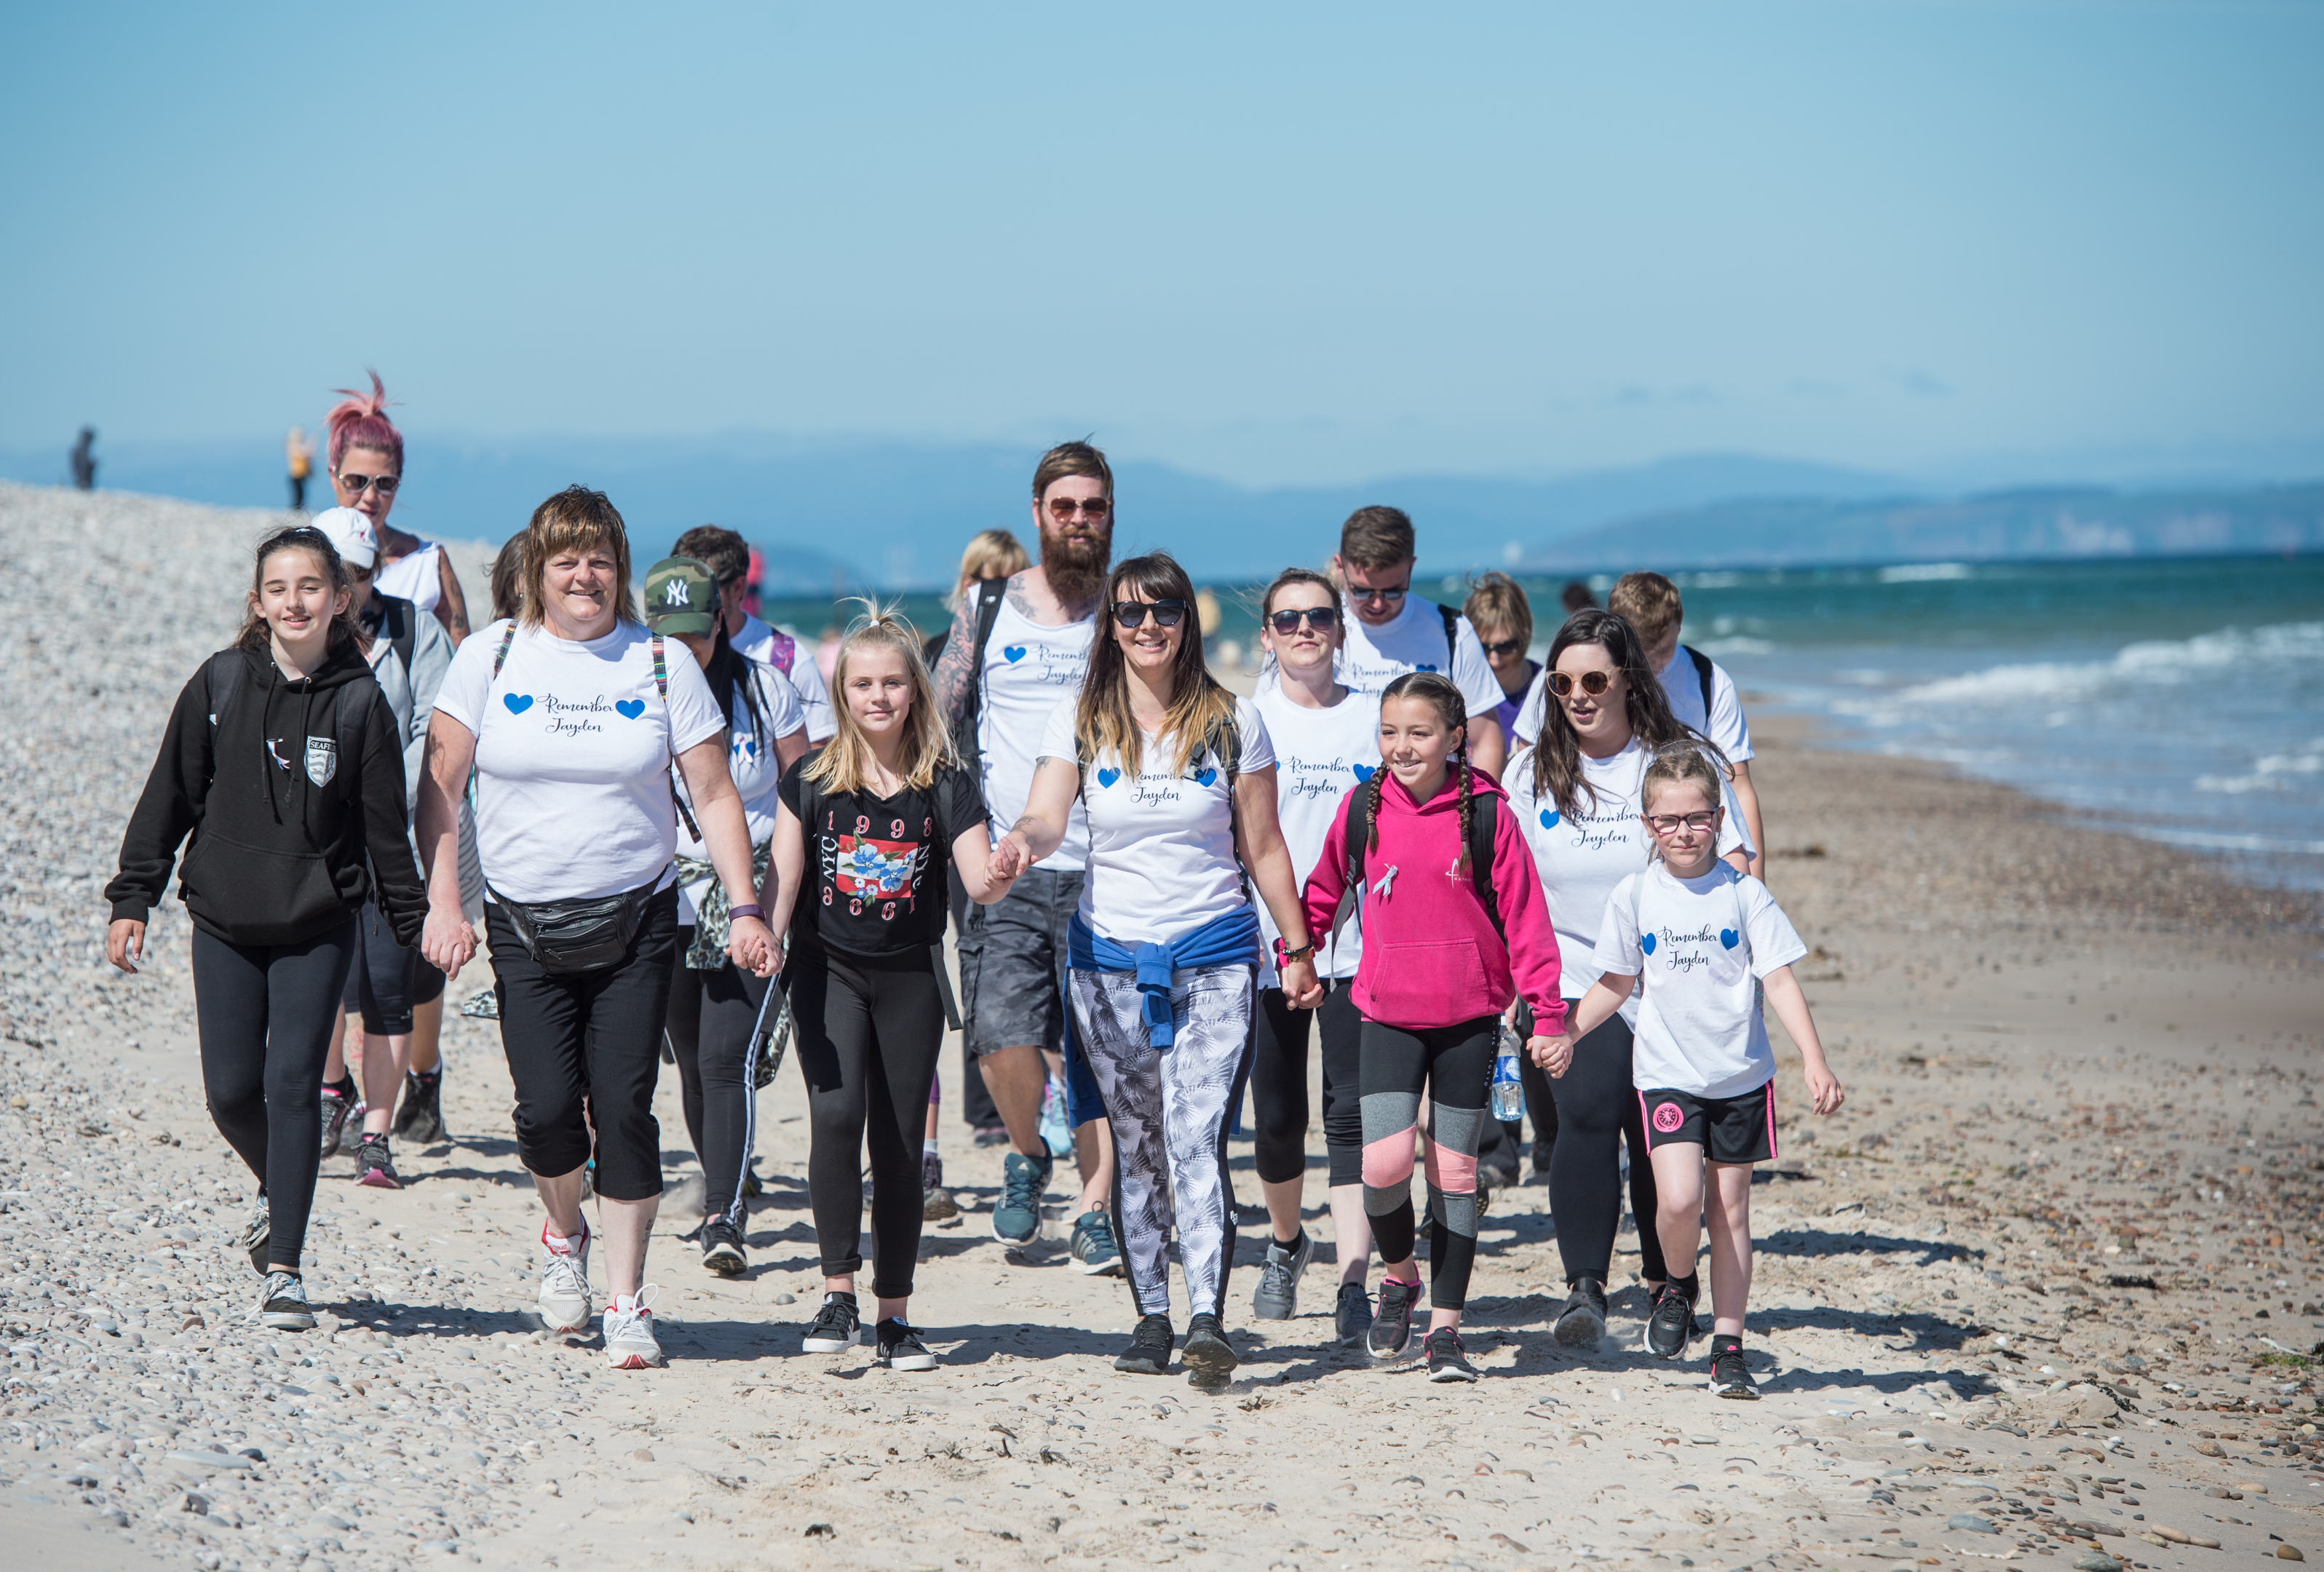 The parents, friends and family of Jayden Ravello who died 2 years ago, embark on a 17-mile walk